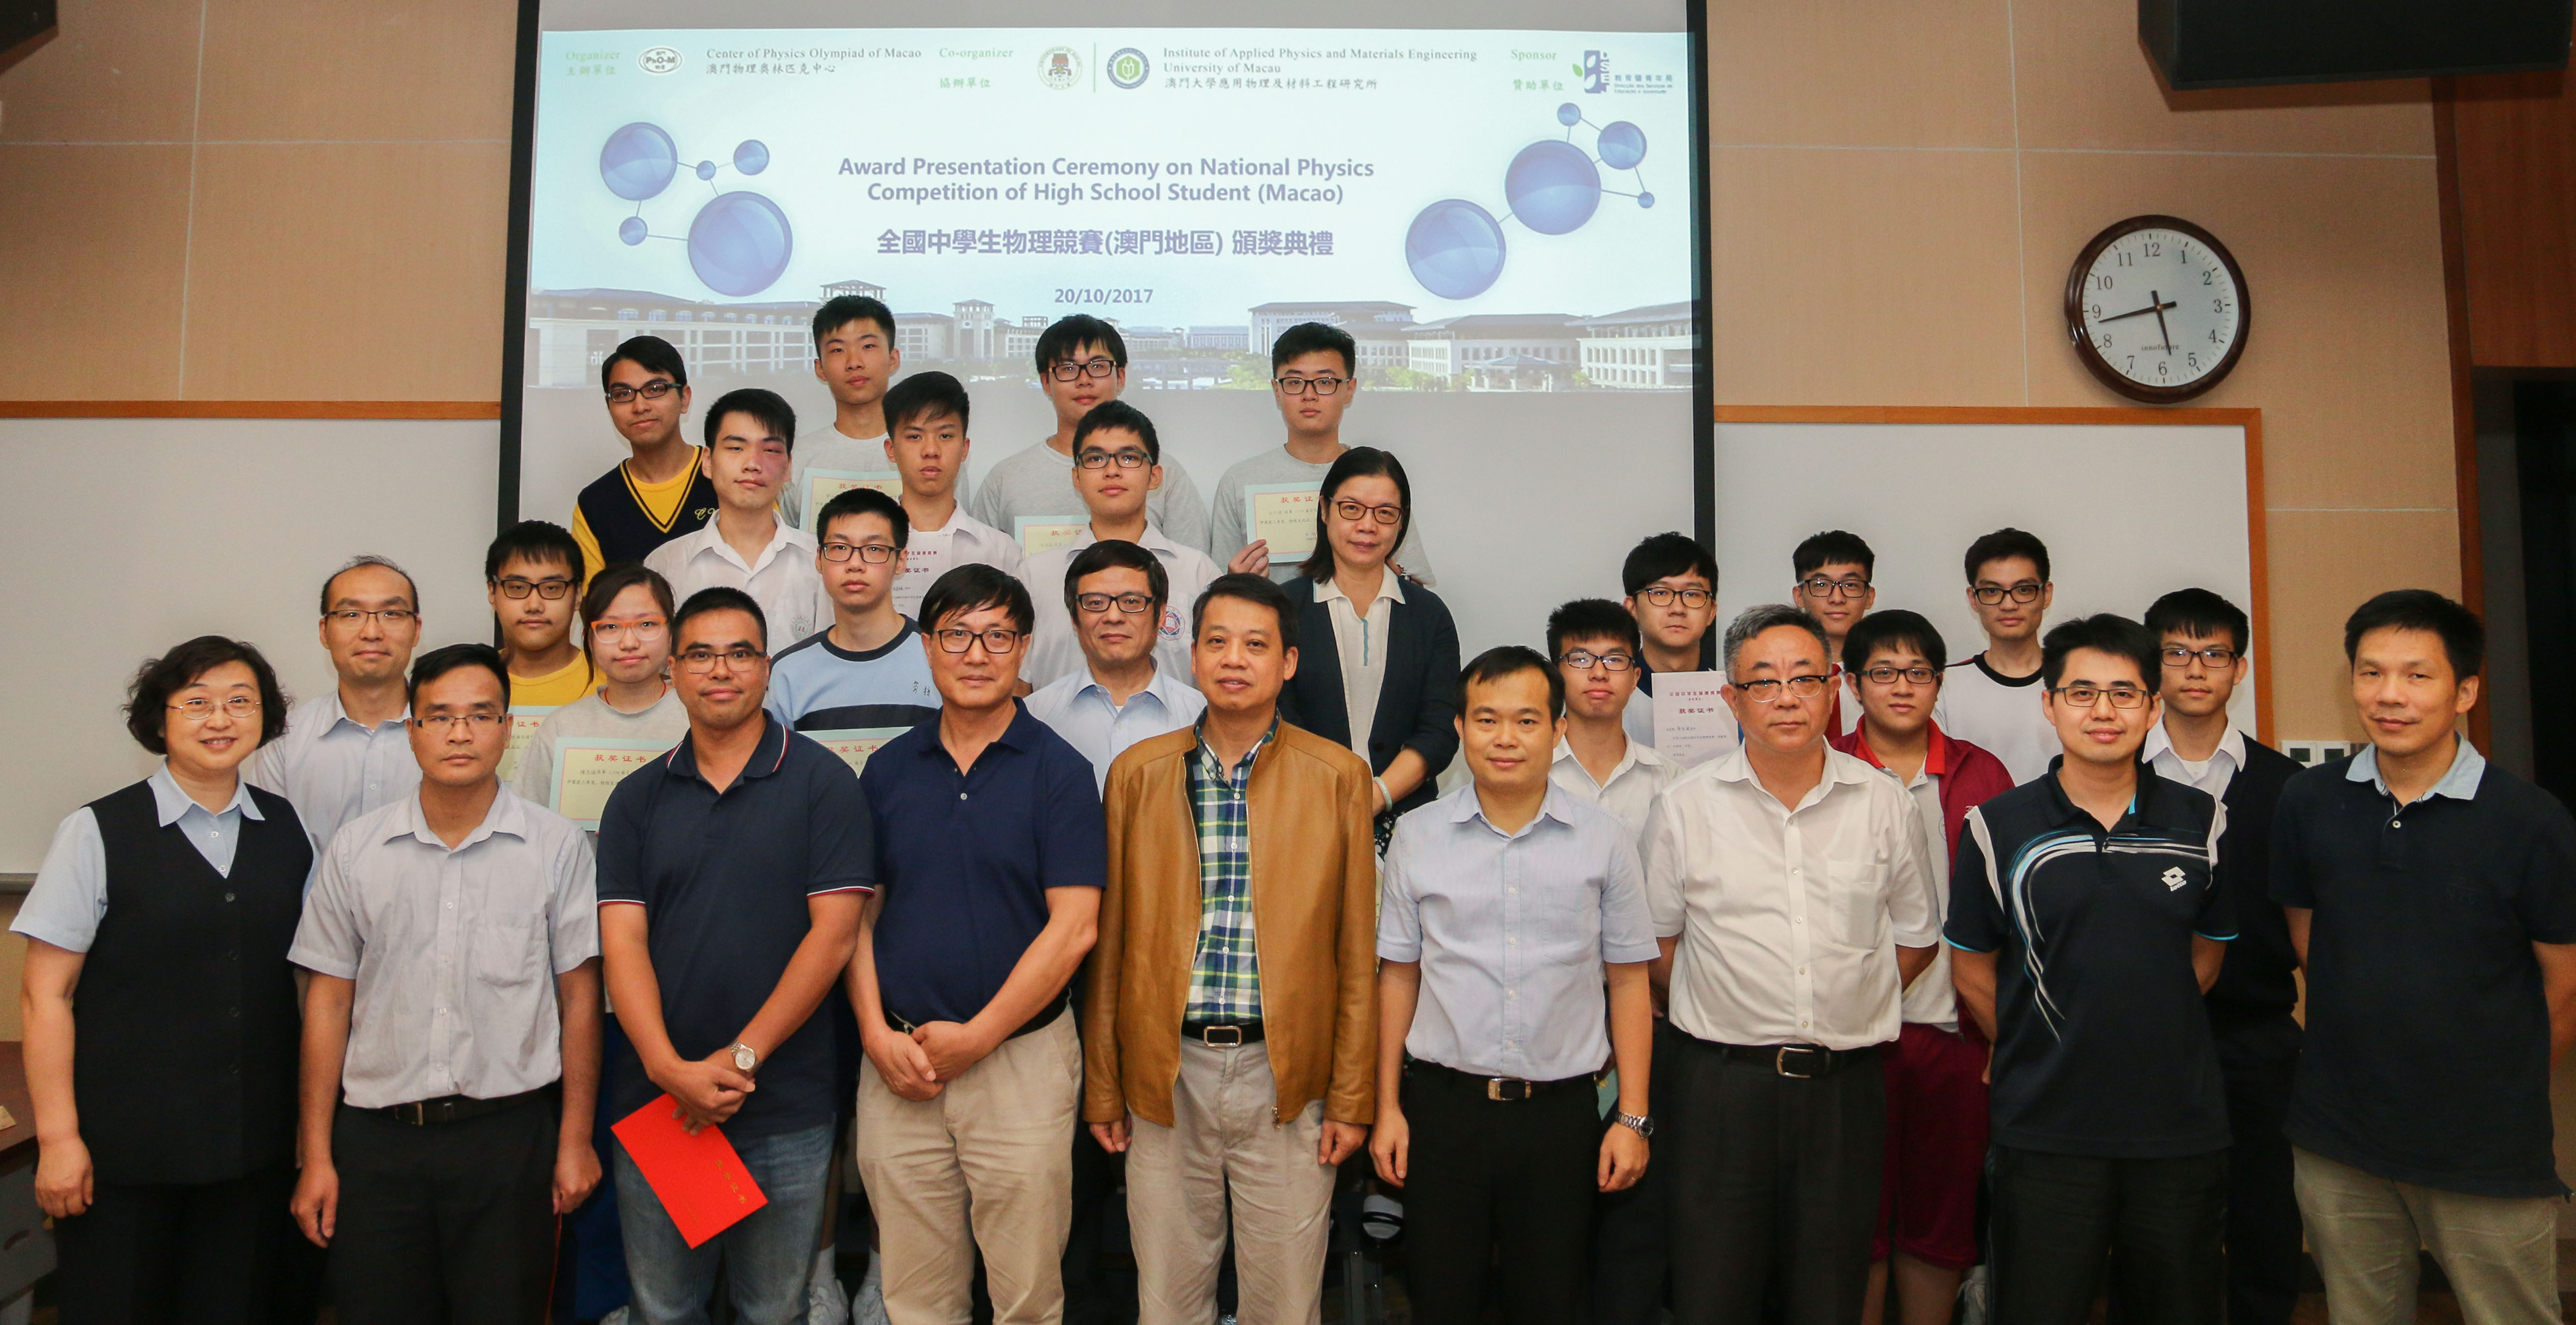 The award ceremony for winners of the 34th Chinese Physics Olympiad (Macao Region) held at UM